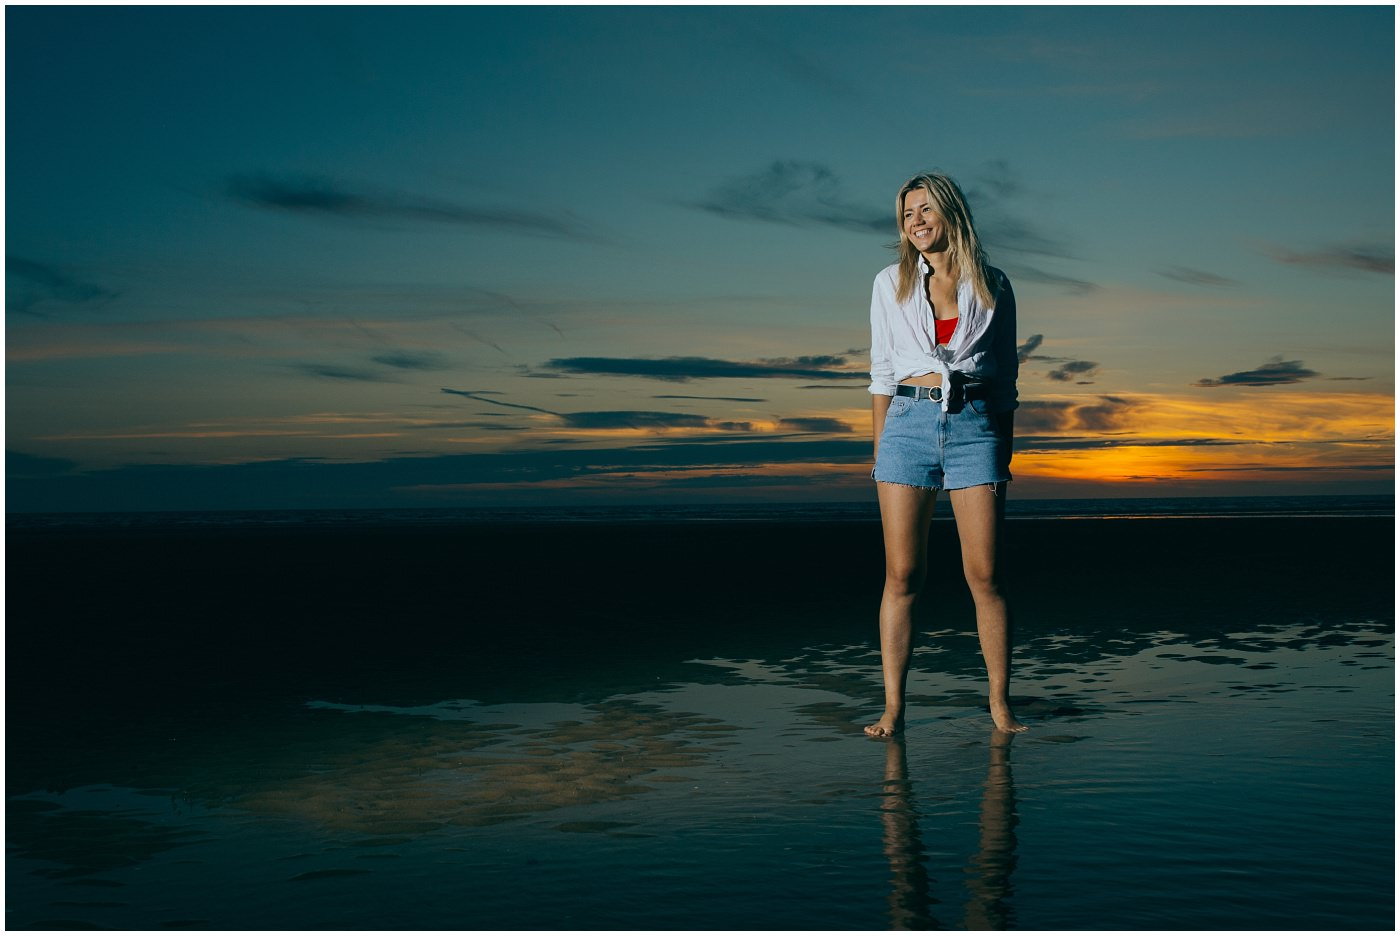 Model on Formby Beach at sunset